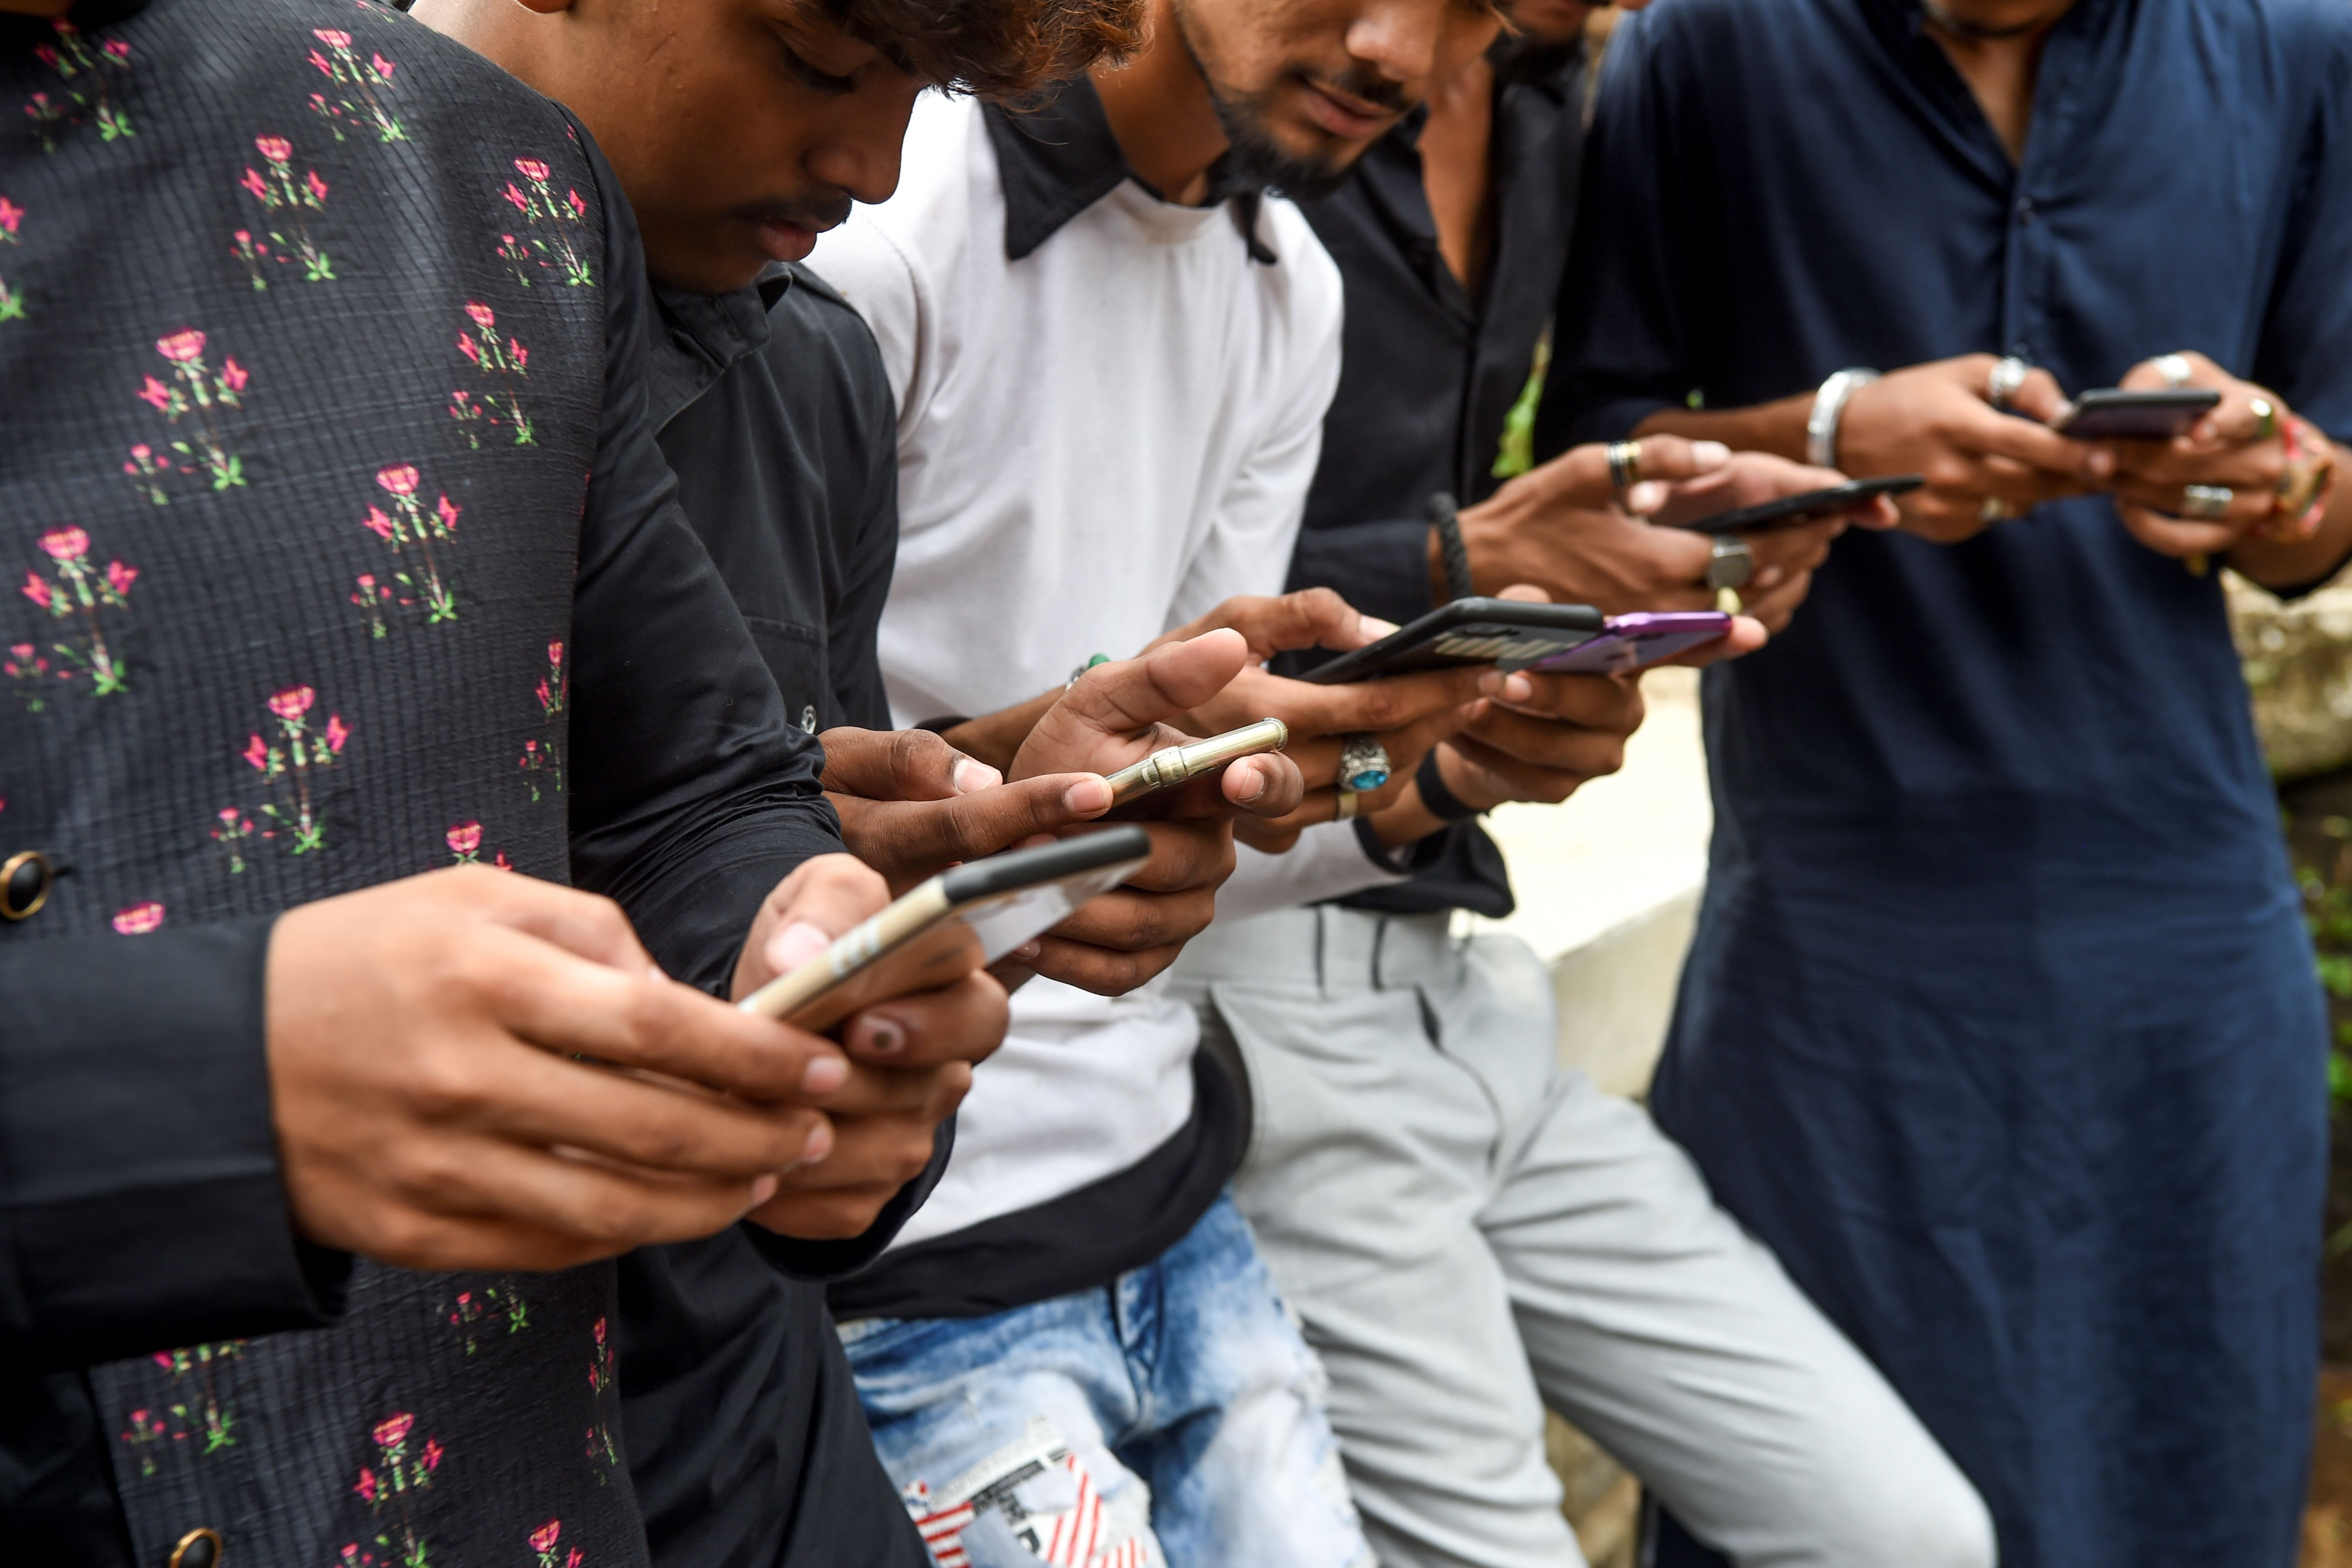 Youths watching videos on video-sharing app TikTok on their mobile phones in Mumbai.